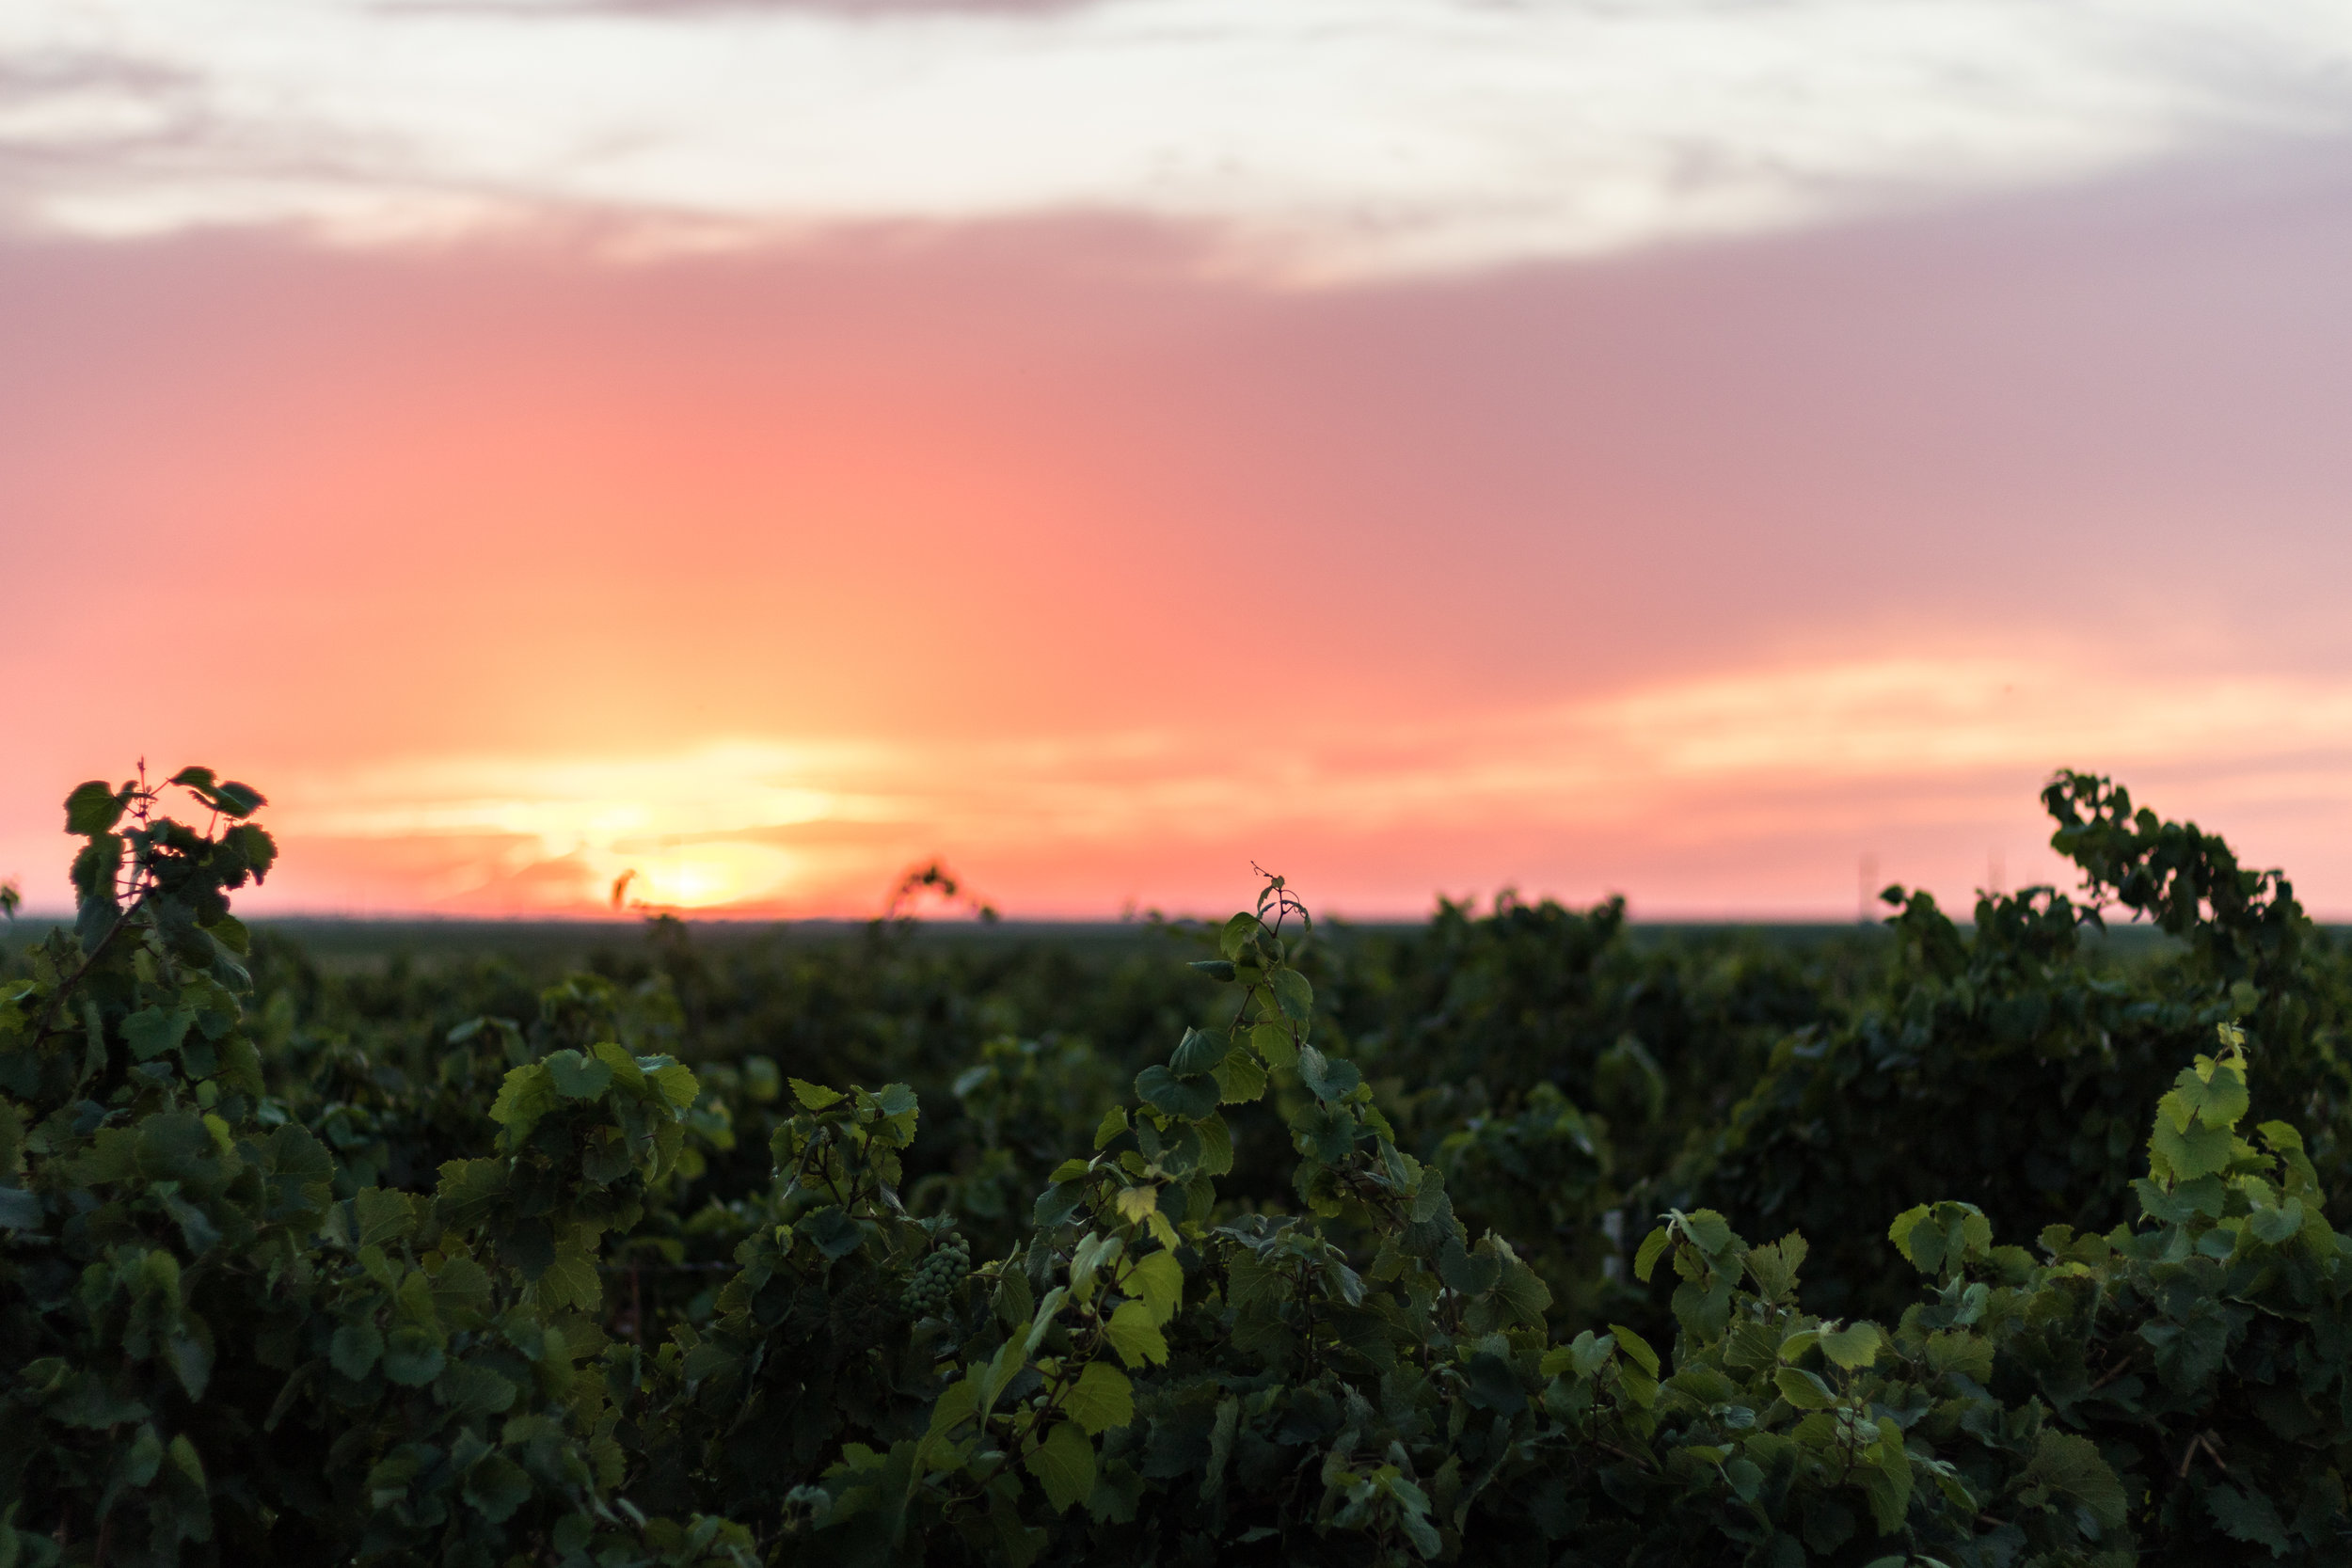 Our family vineyard, Krick Hill, located 10 miles west of Levelland.